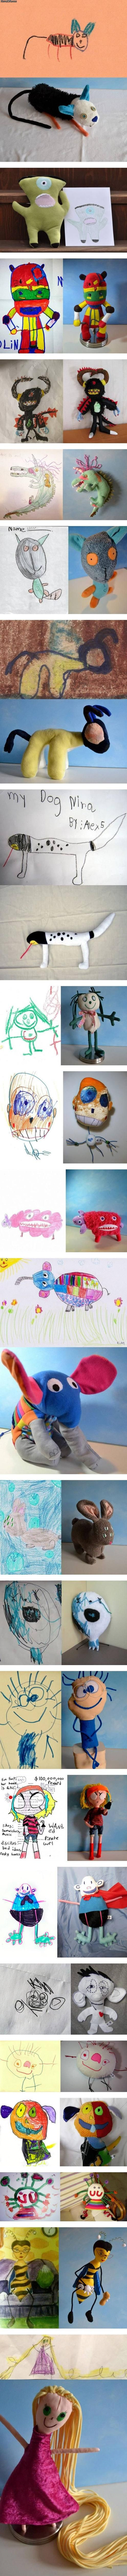 If childrens' drawings were turned into toys... Collaboration with elementary and high school crafts class?